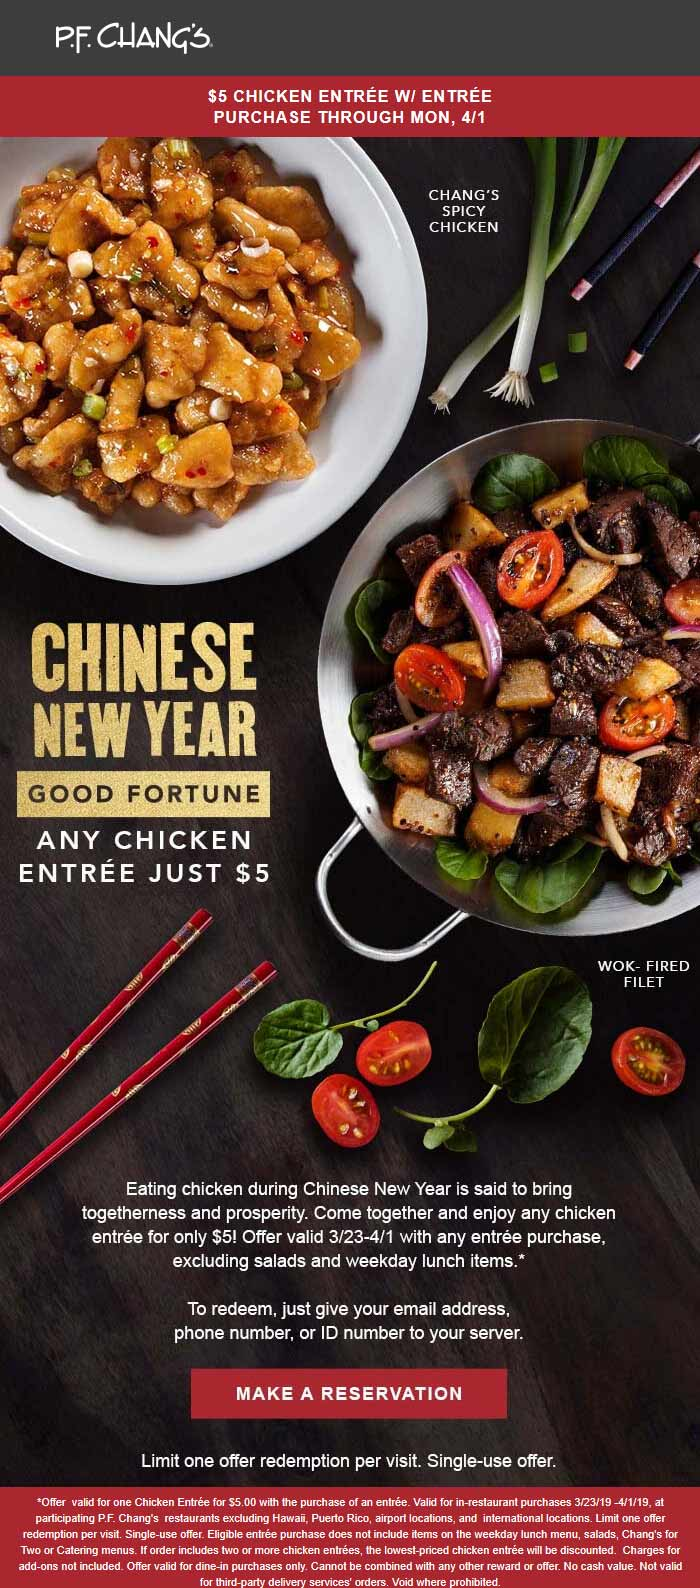 P.F. Changs Coupon May 2019 $5 chicken entree with your entree at P.F. Changs